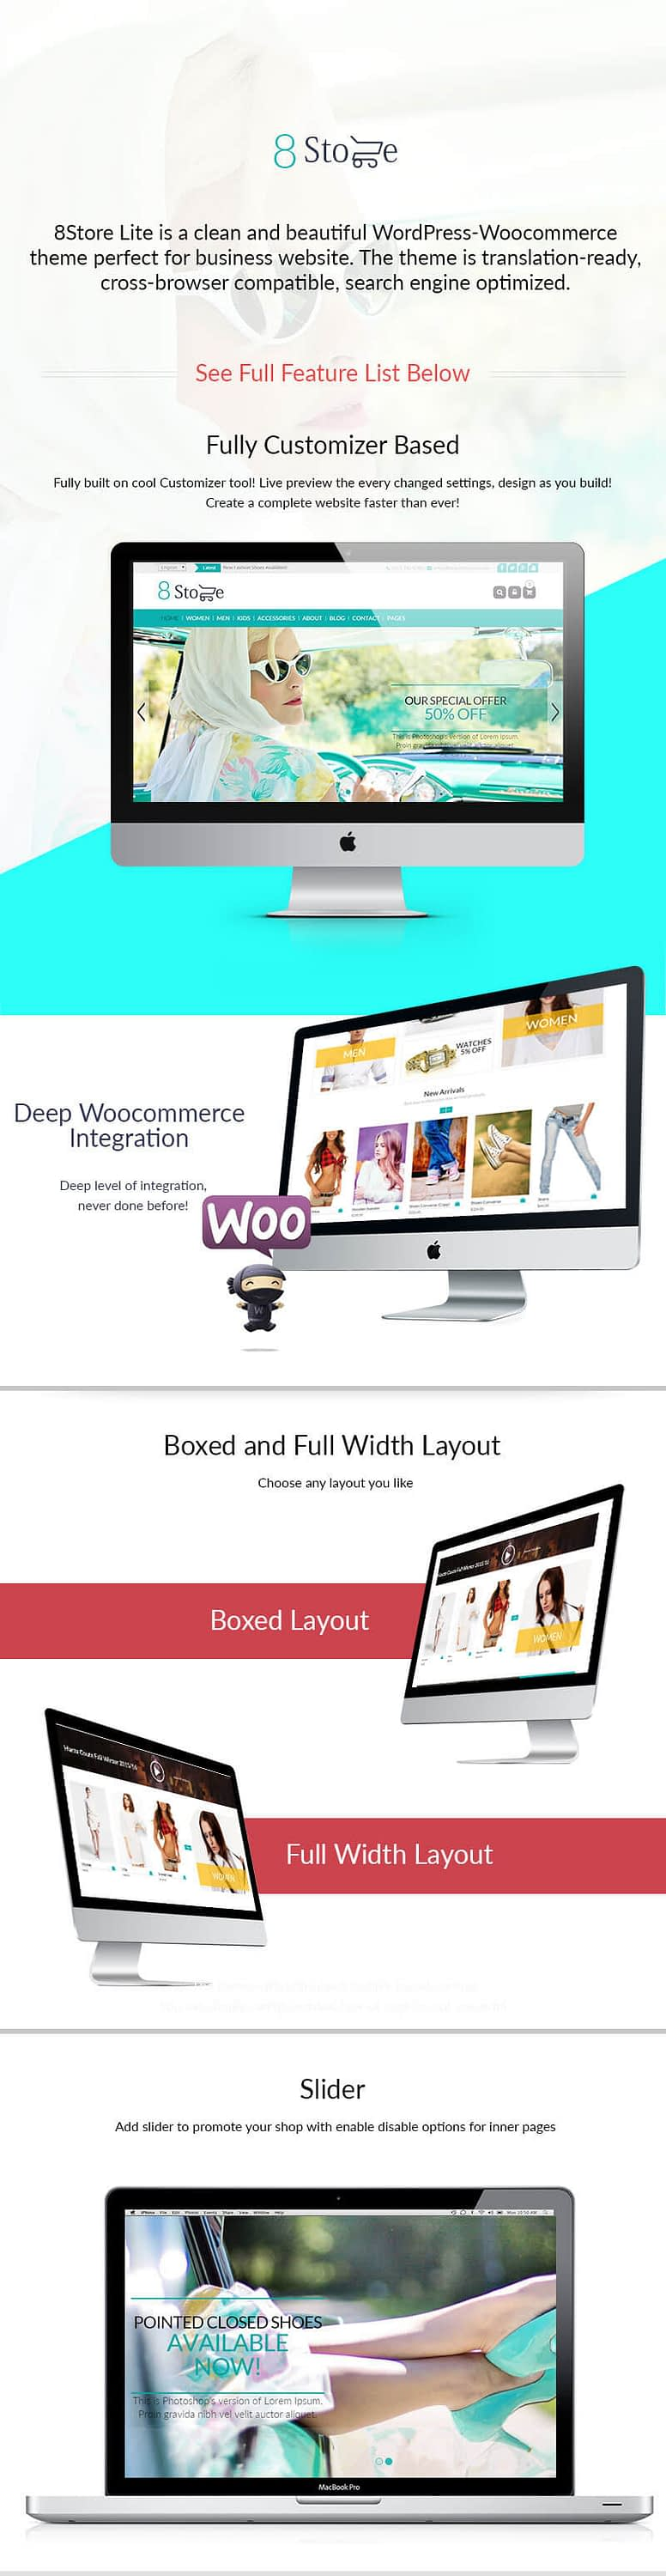 EightStore Lite – Best Free WooCommerce, eCommerce and Store WordPress Theme